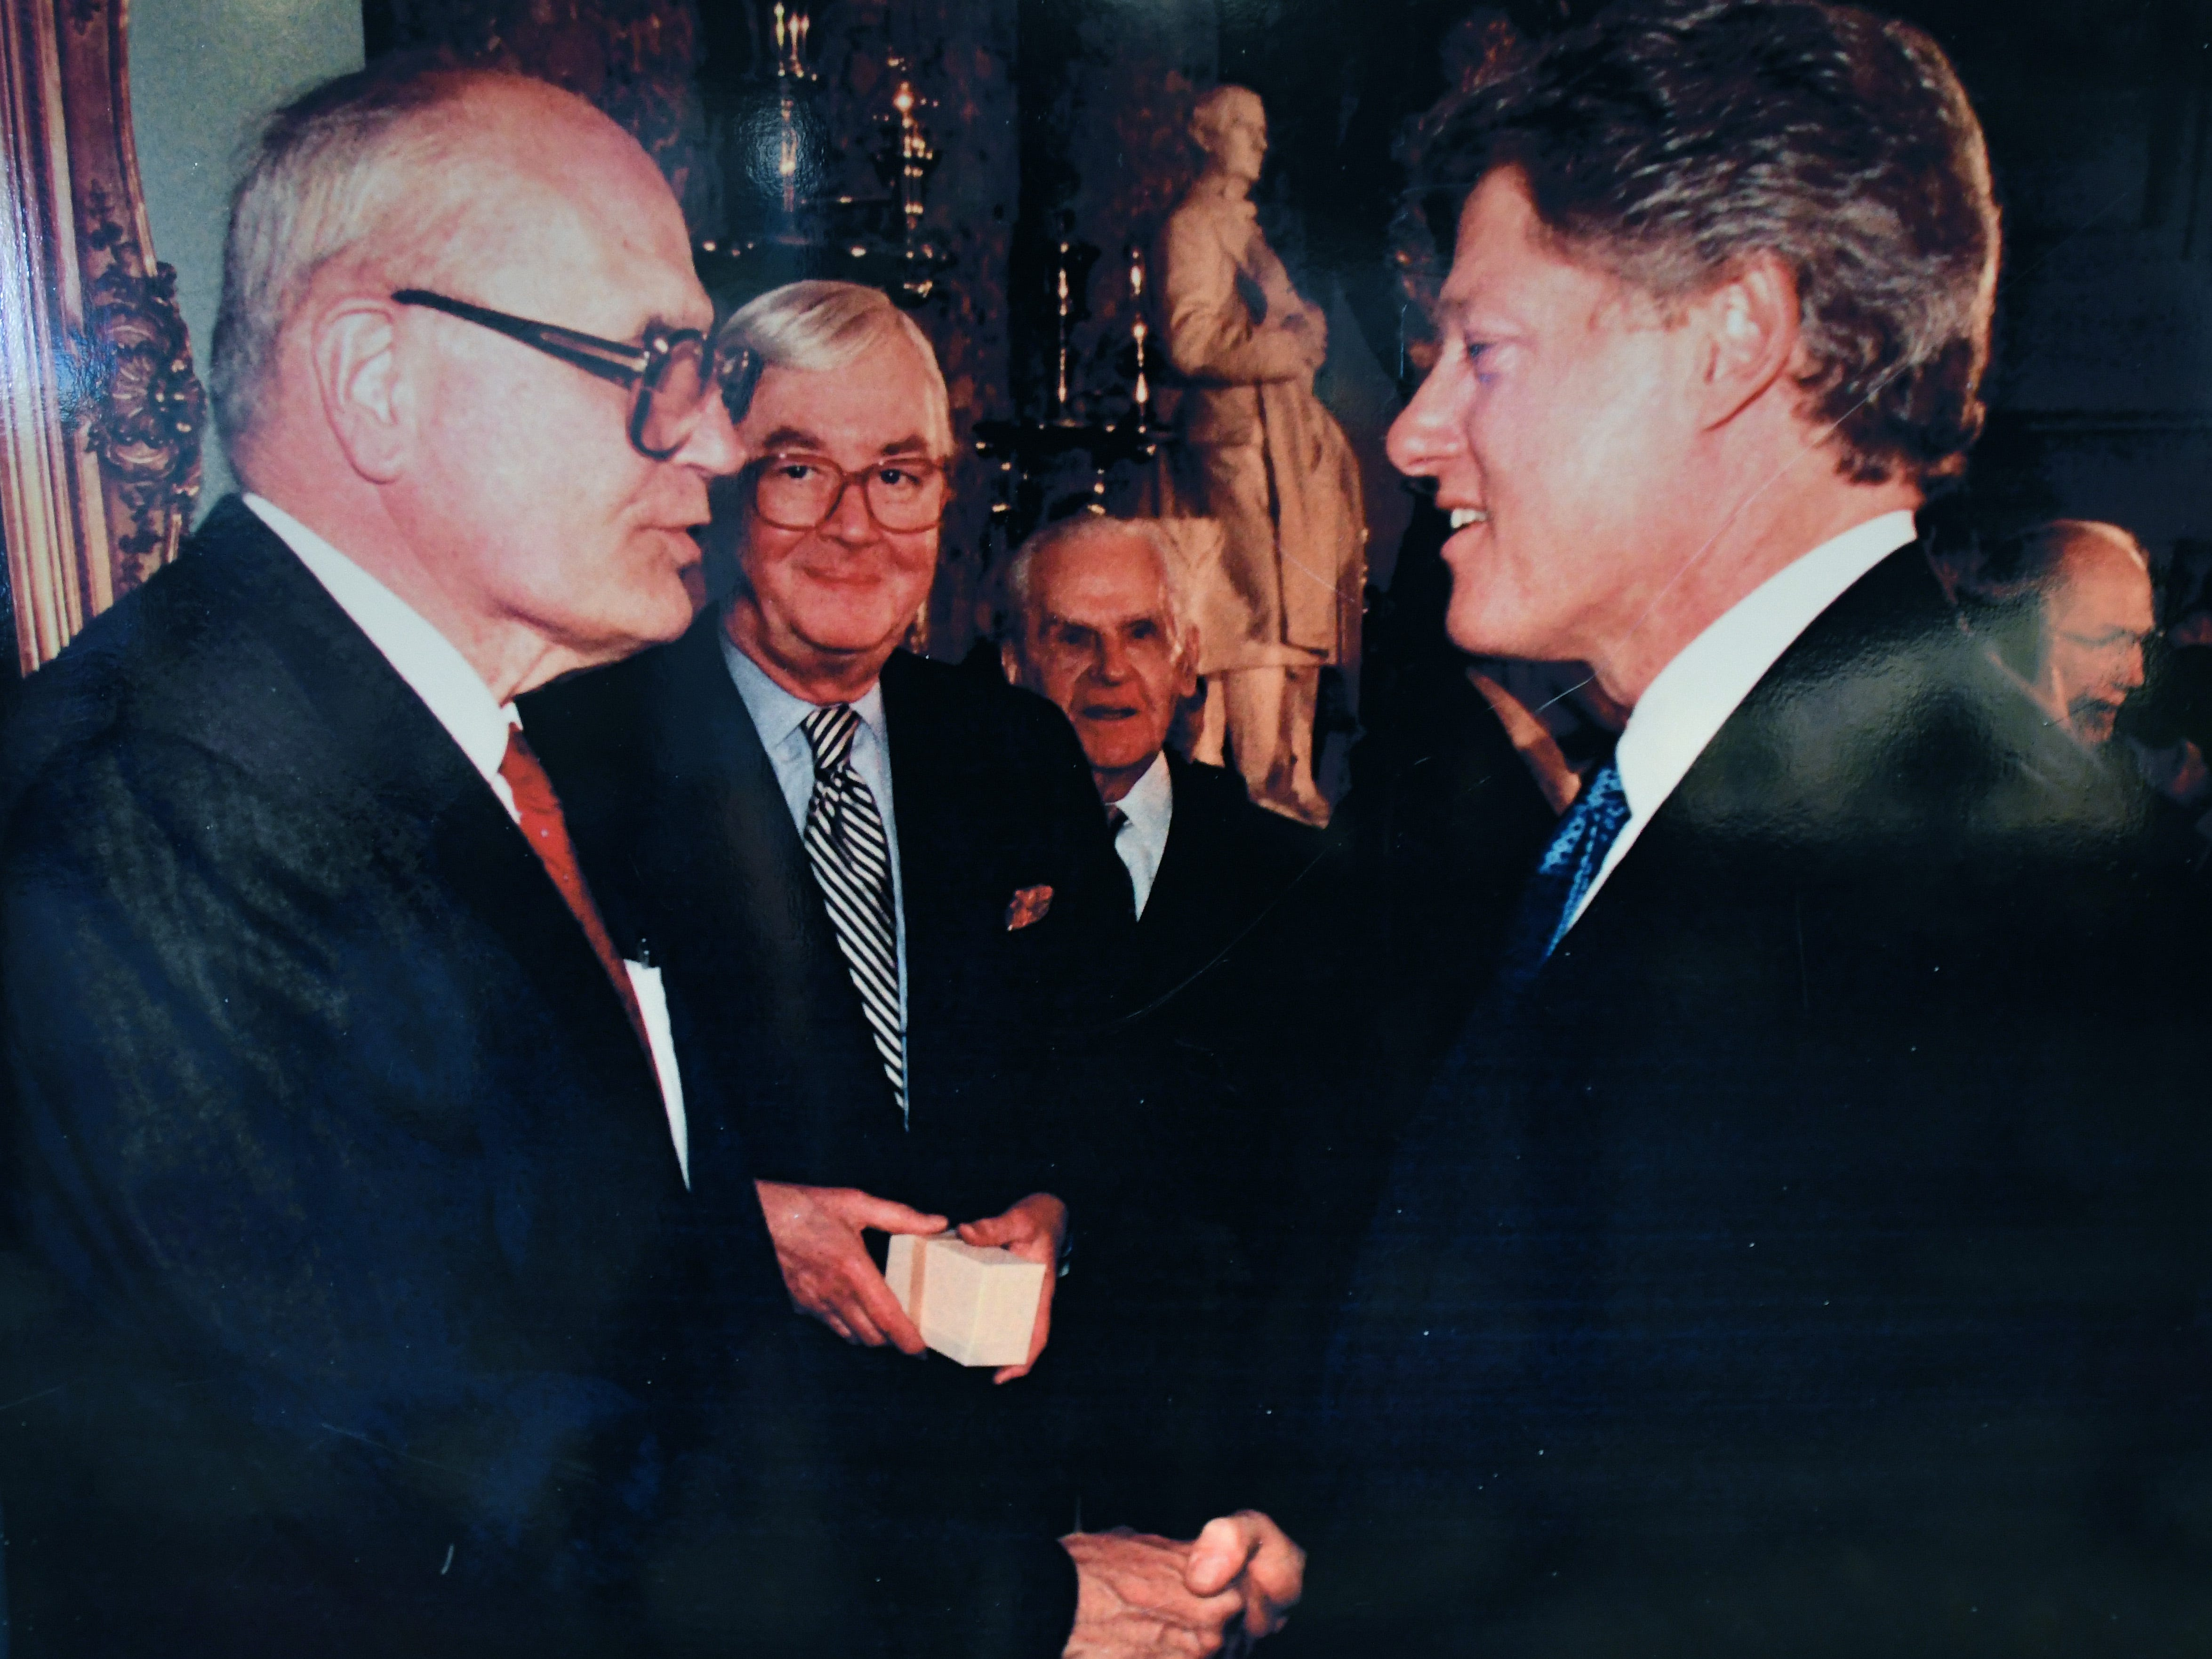 John Dingell shakes hands with President Bill Clinton as Sen. Daniel Patrick Moynihan of New York looks on.